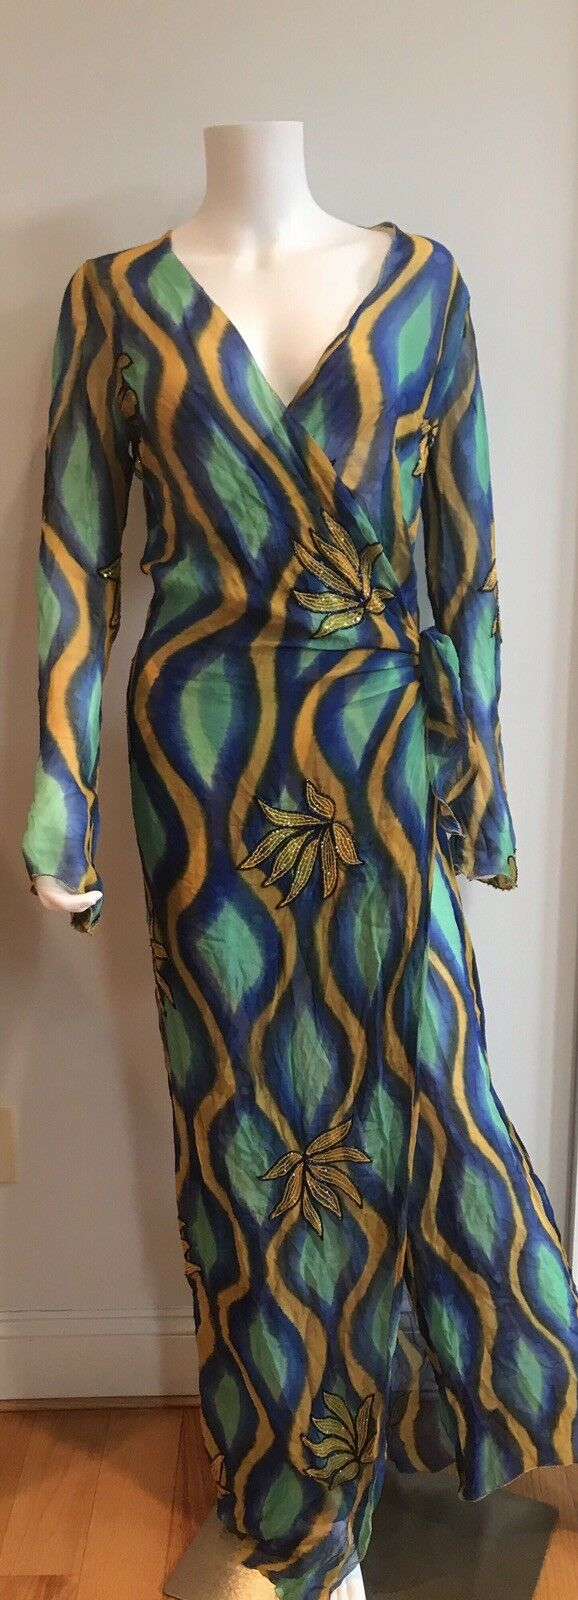 ORDINARY PEOPLE Exceptional RARE Dress 100% Silk Floral Beading Made In